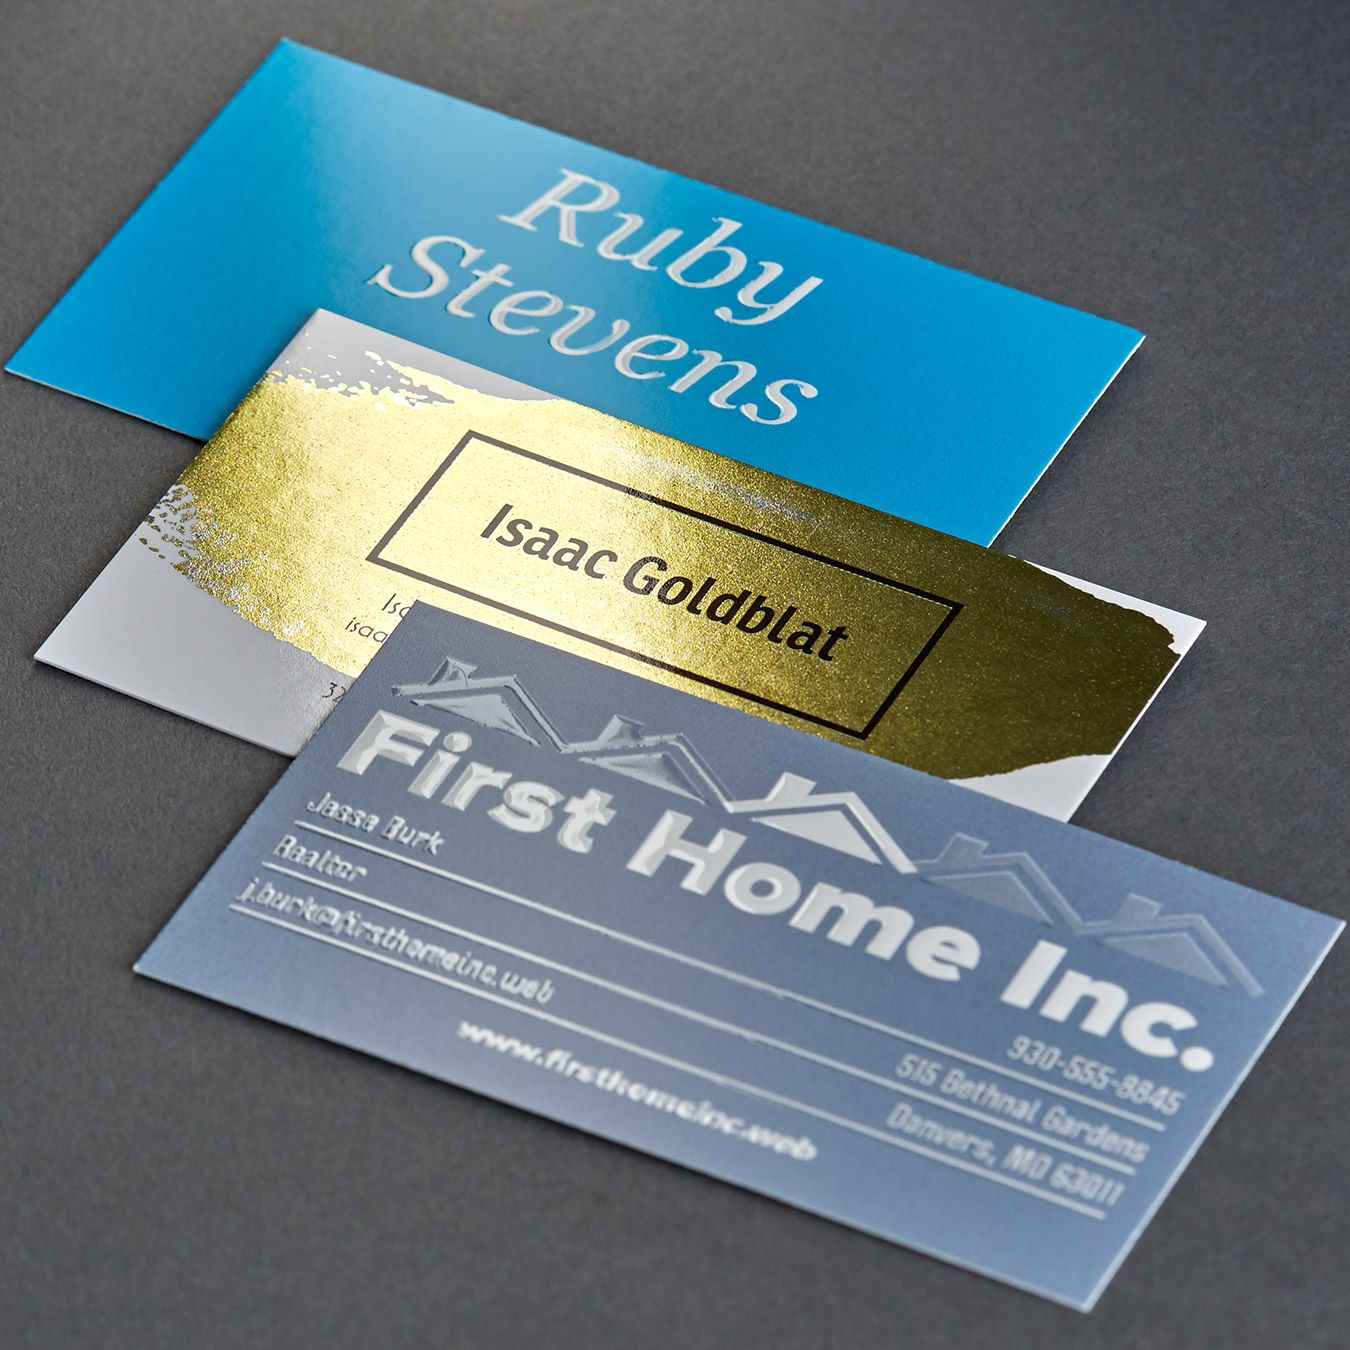 Img Caspx 1350 1350 Printing Business Cards Foil Business Cards Business Cards Online